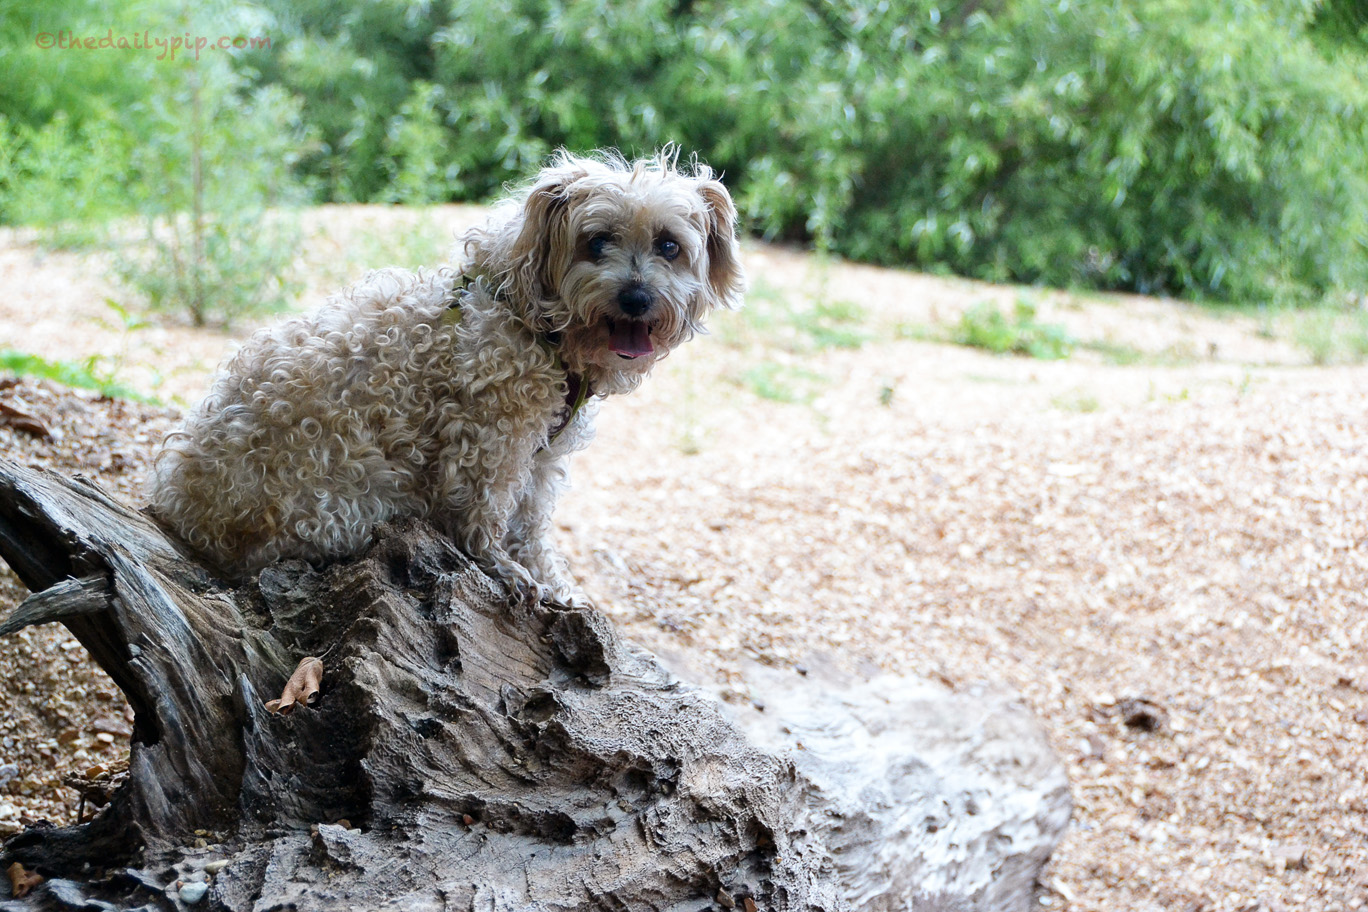 Dog sitting on a tree stump blending in with her environment